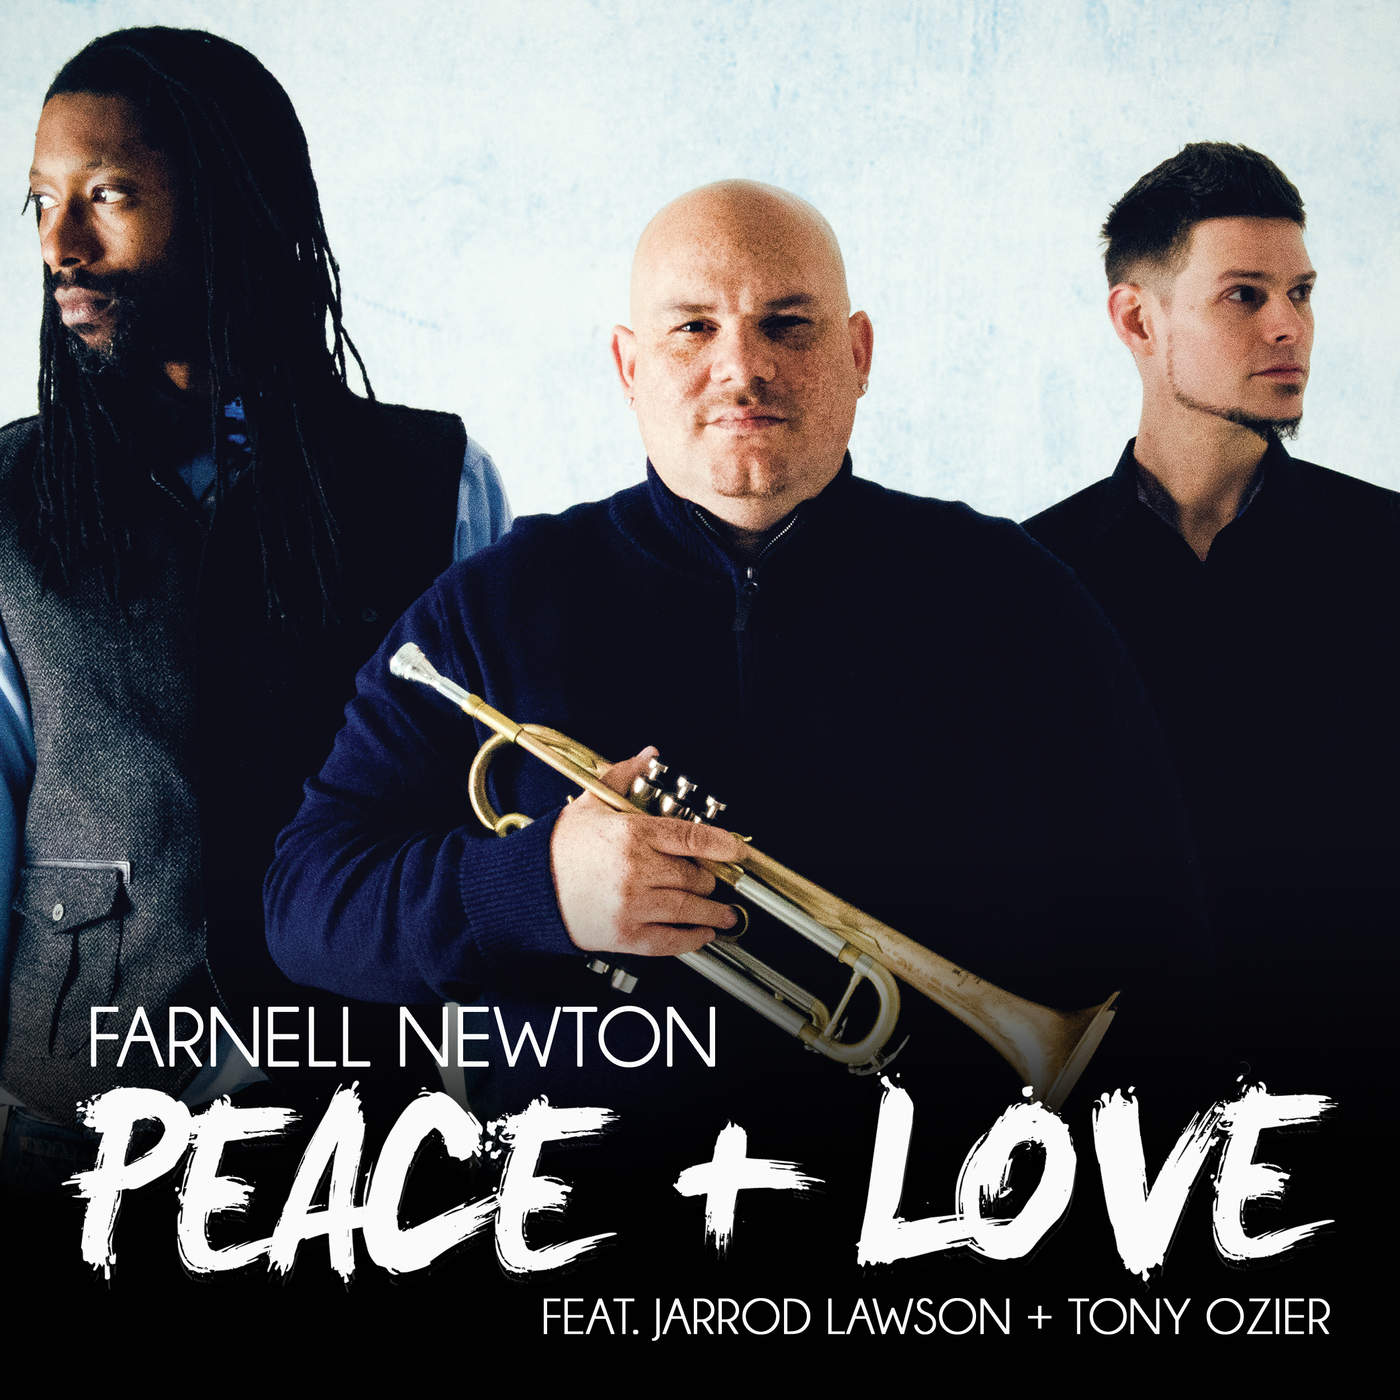 Farnell Newton – Peace + Love feat. Jarrod Lawson & Tony Ozier